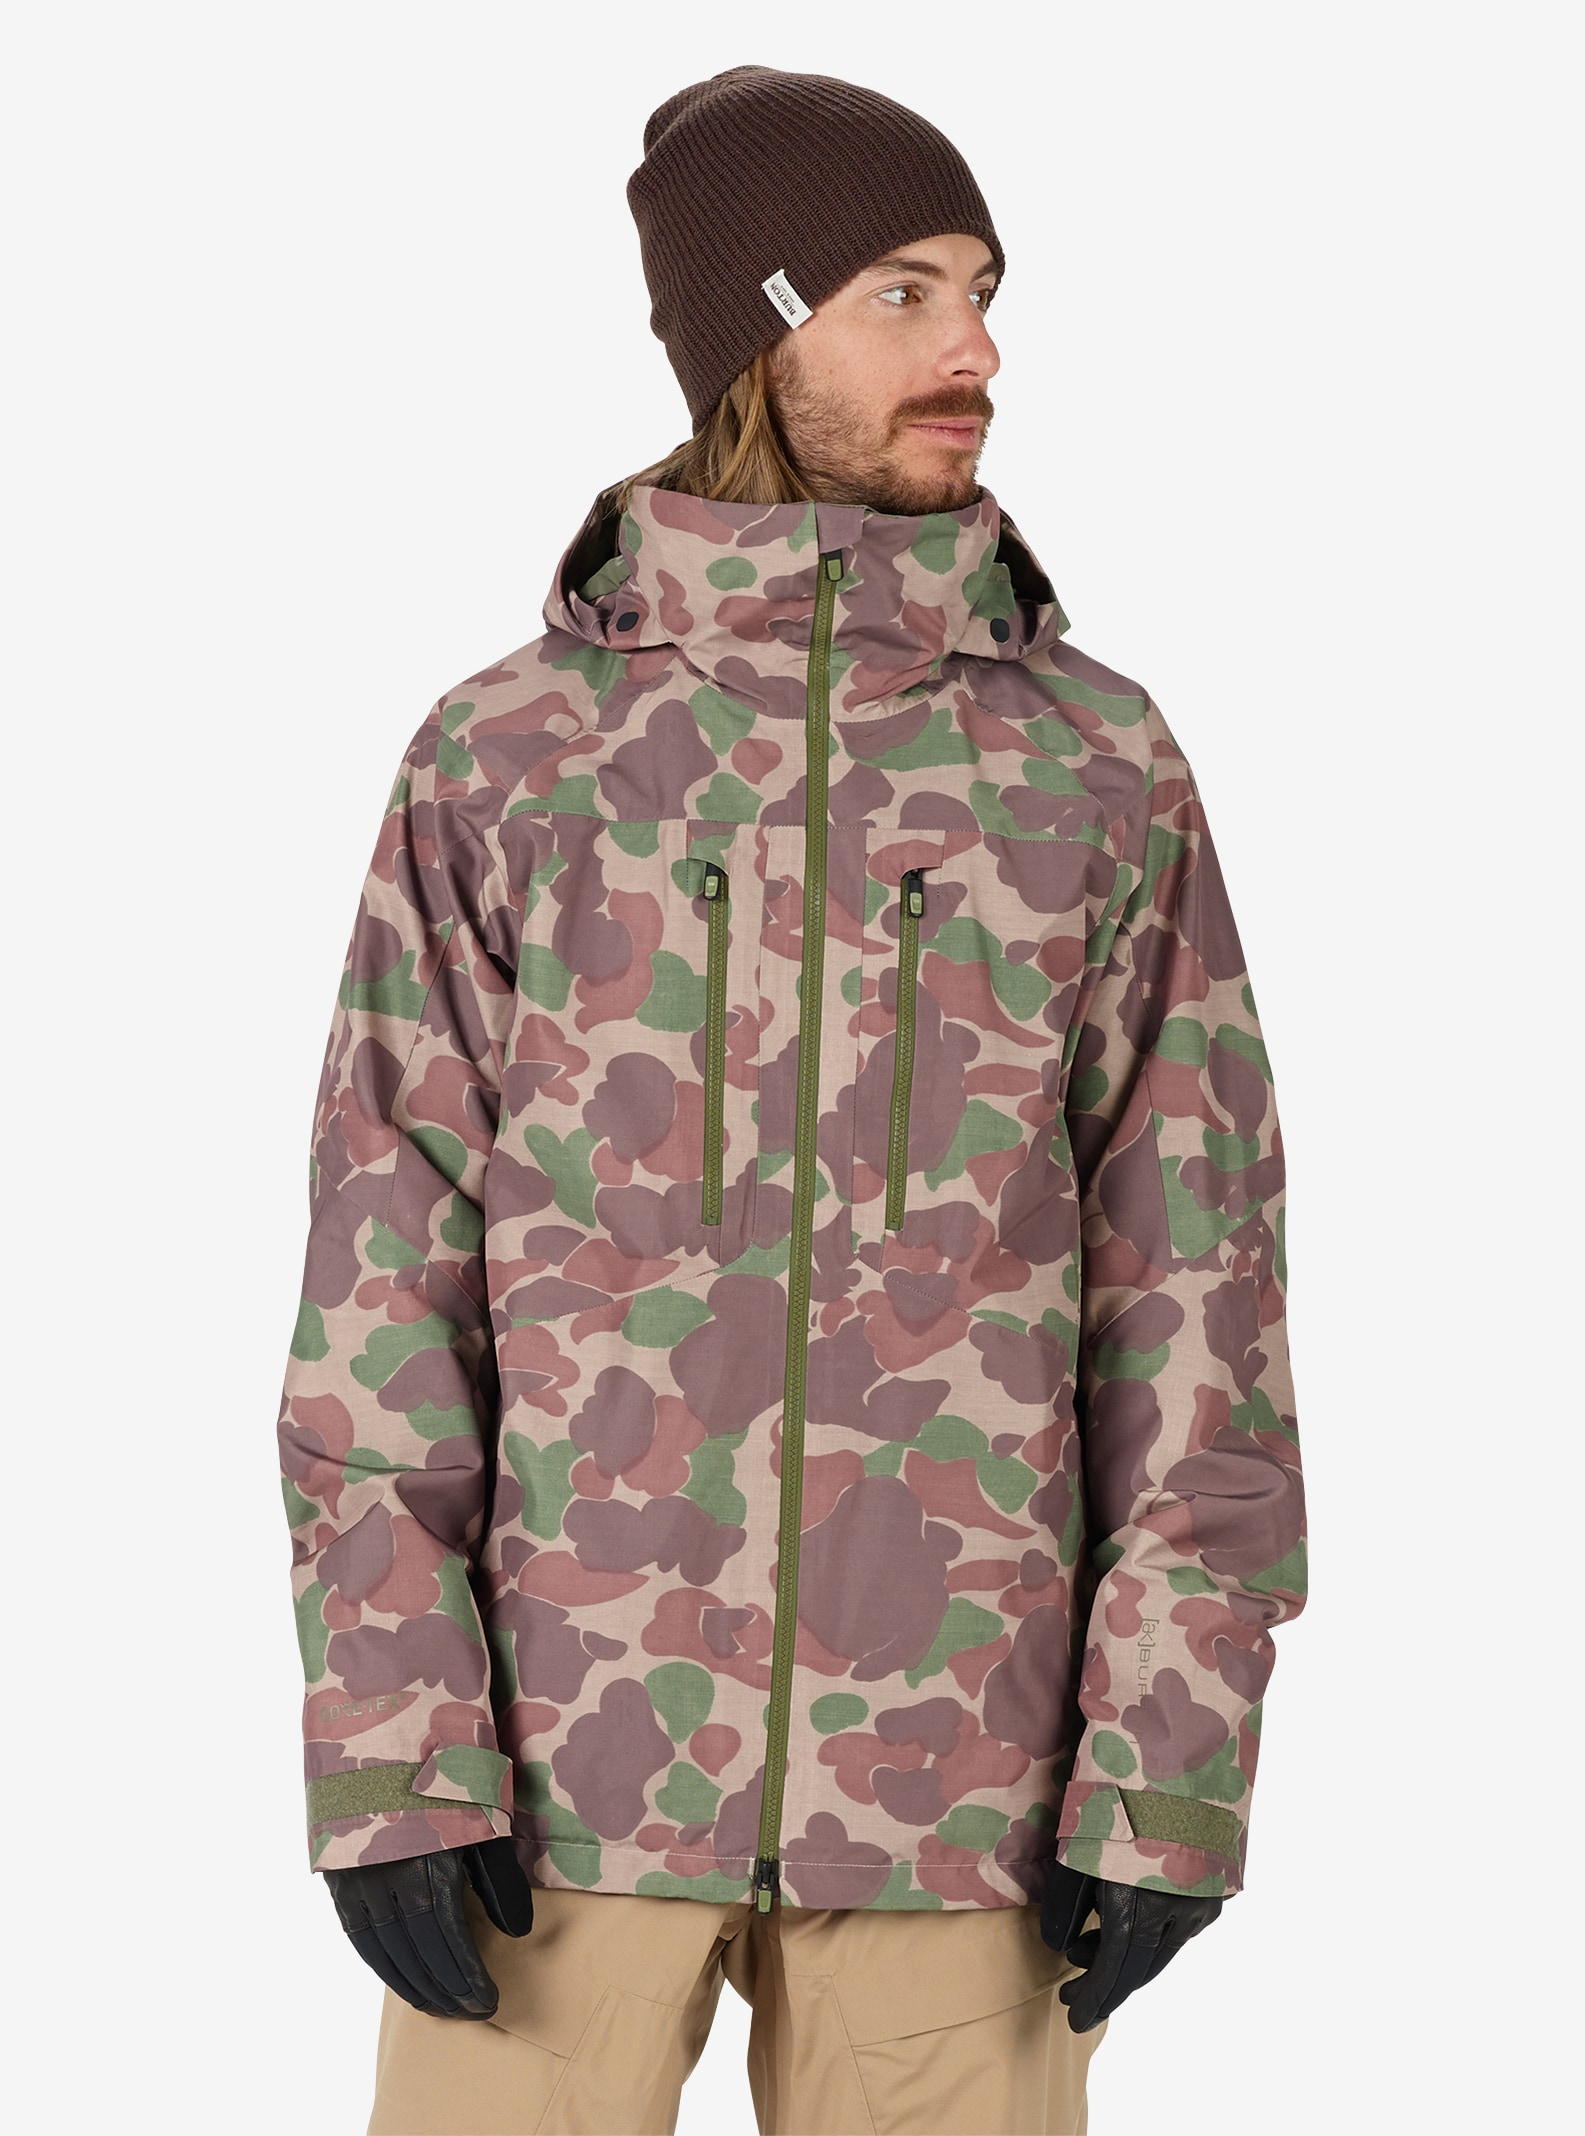 Men's Burton [ak] 2L GORE‑TEX® Swash Jacket shown in Kodiak Camo